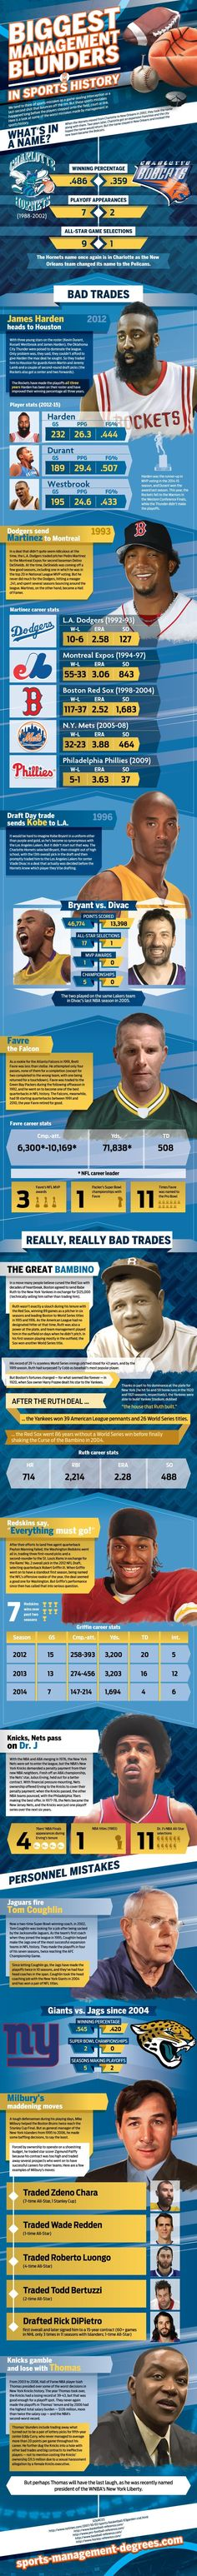 Biggest Management Blunders in Sports History #infographic #Sports